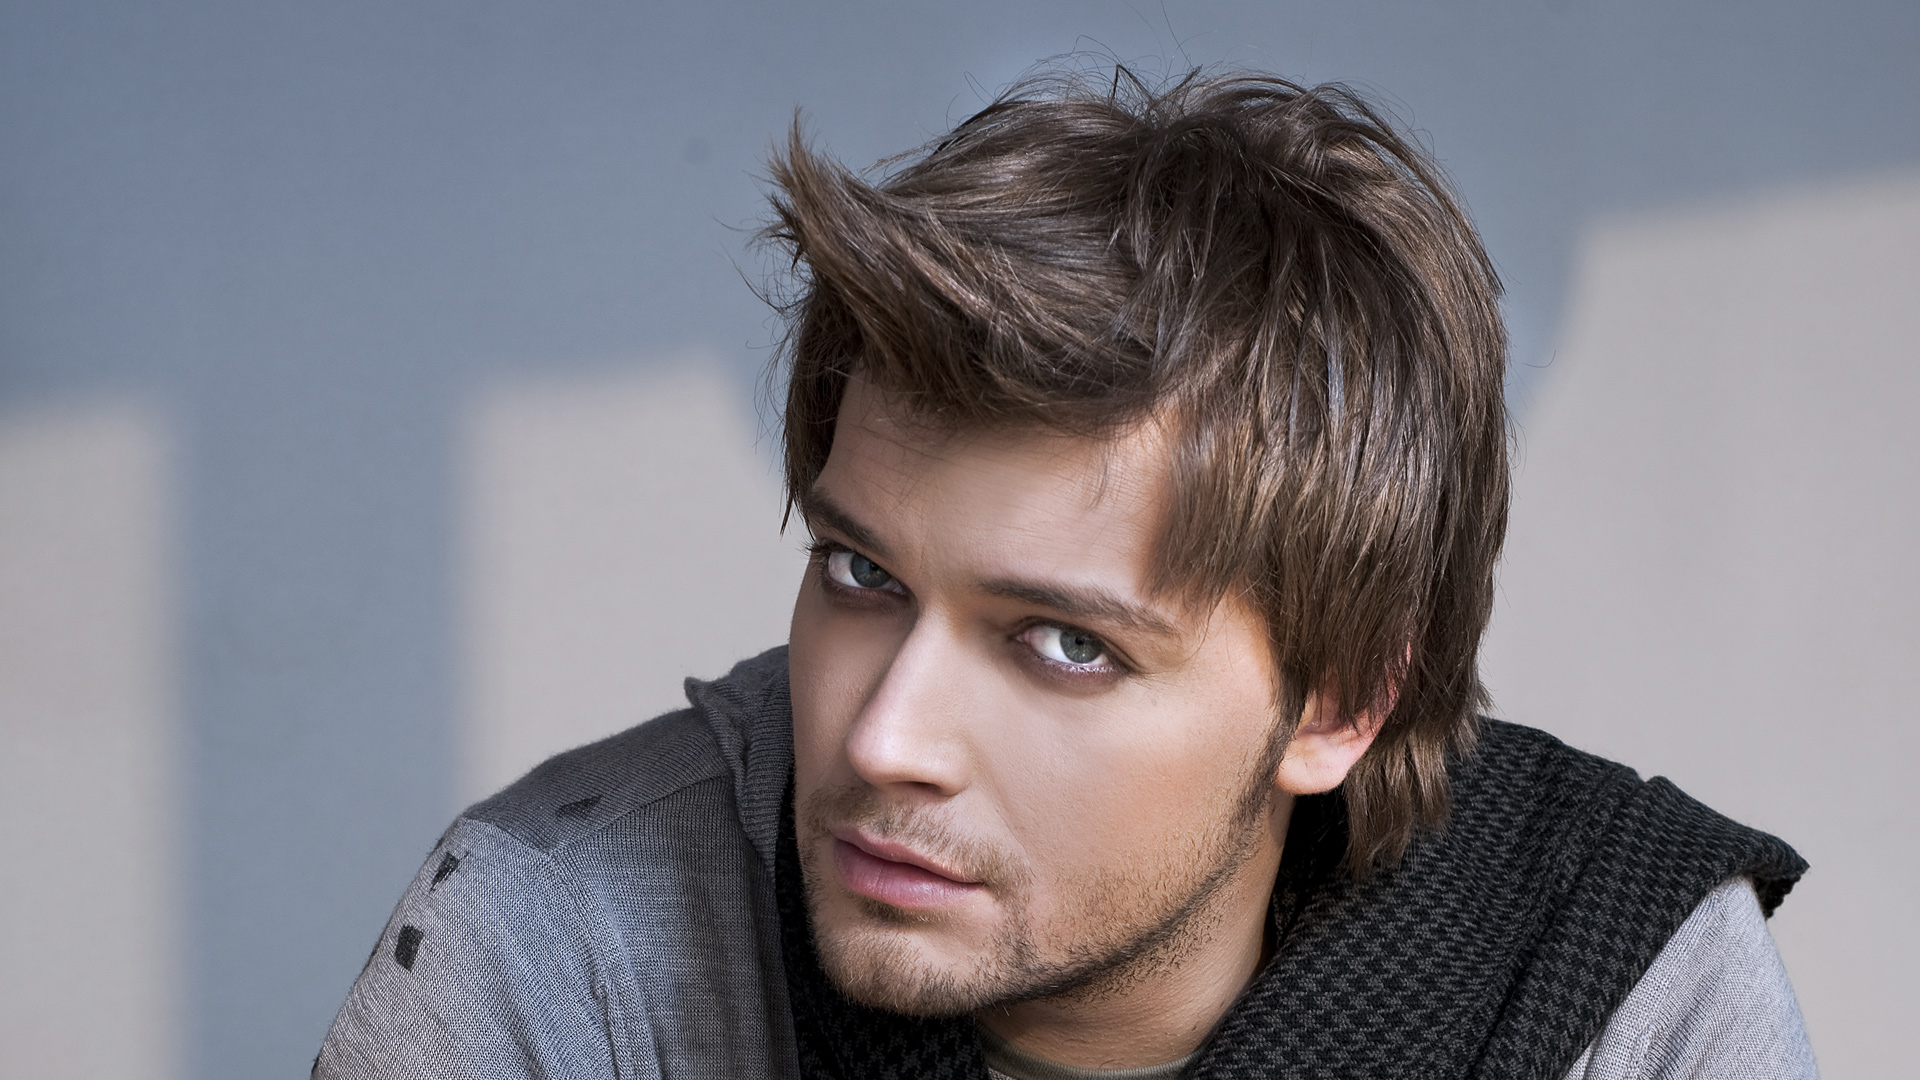 FYR.Macedonia: Eurovision 2011 participant Vlatko Ilievski found dead at the age of 33